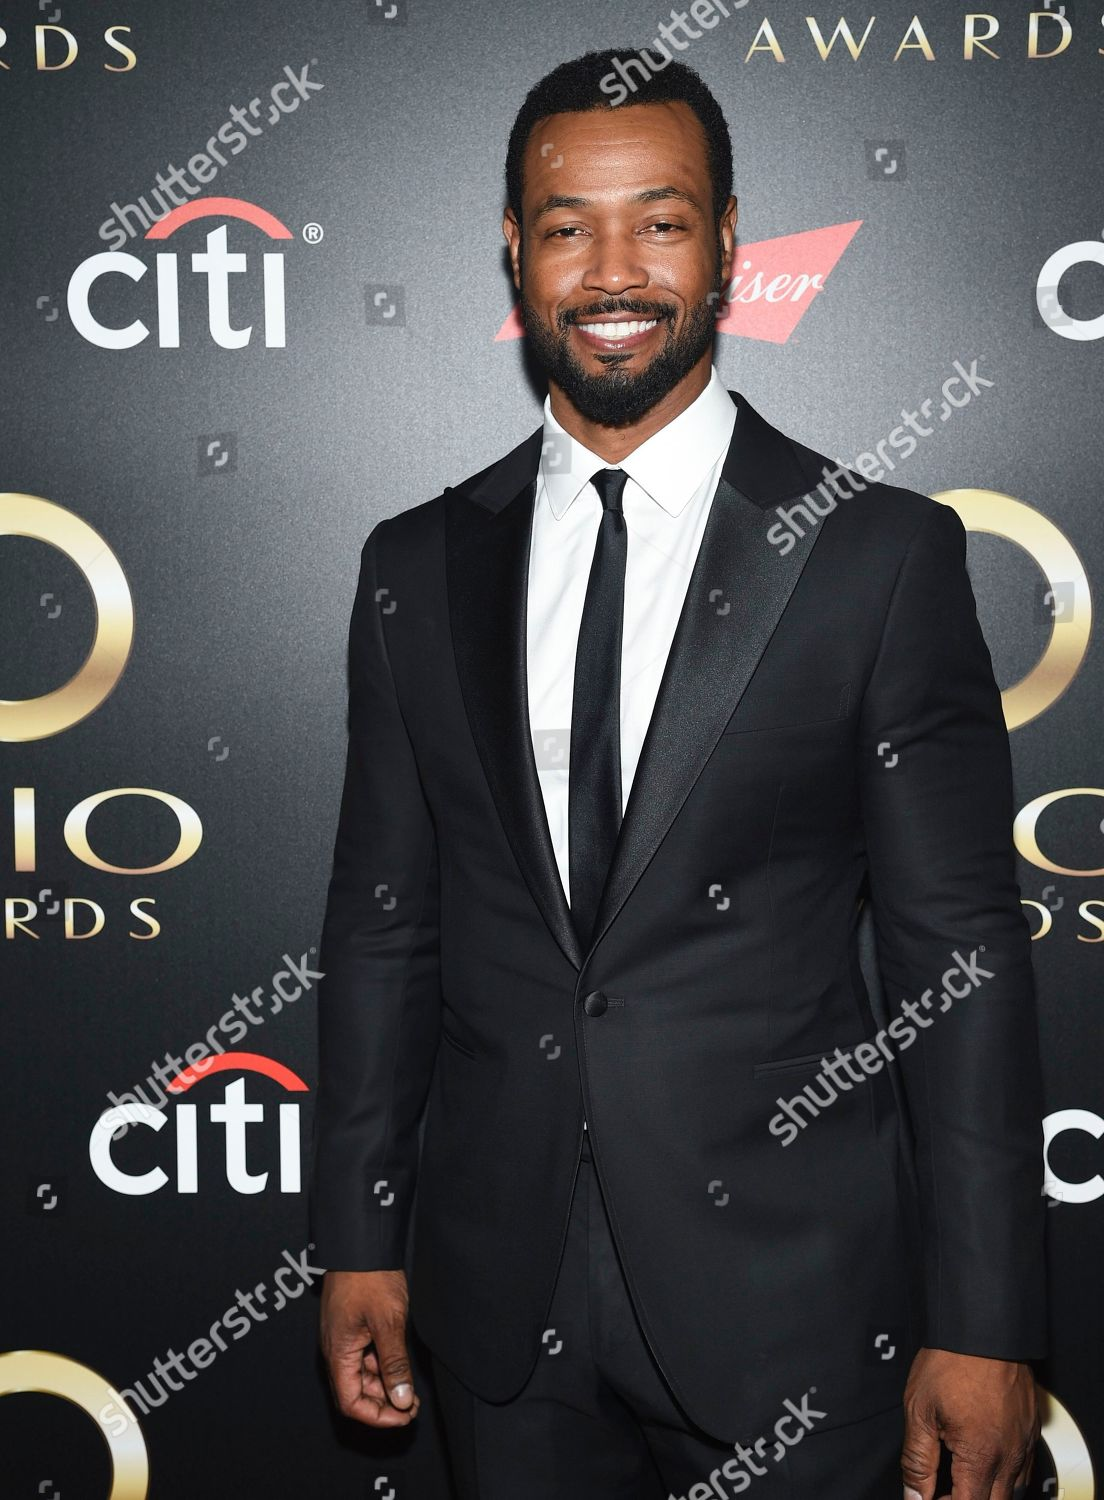 Stock photo of 2019 Clio Awards, New York, USA - 25 Sep 2019